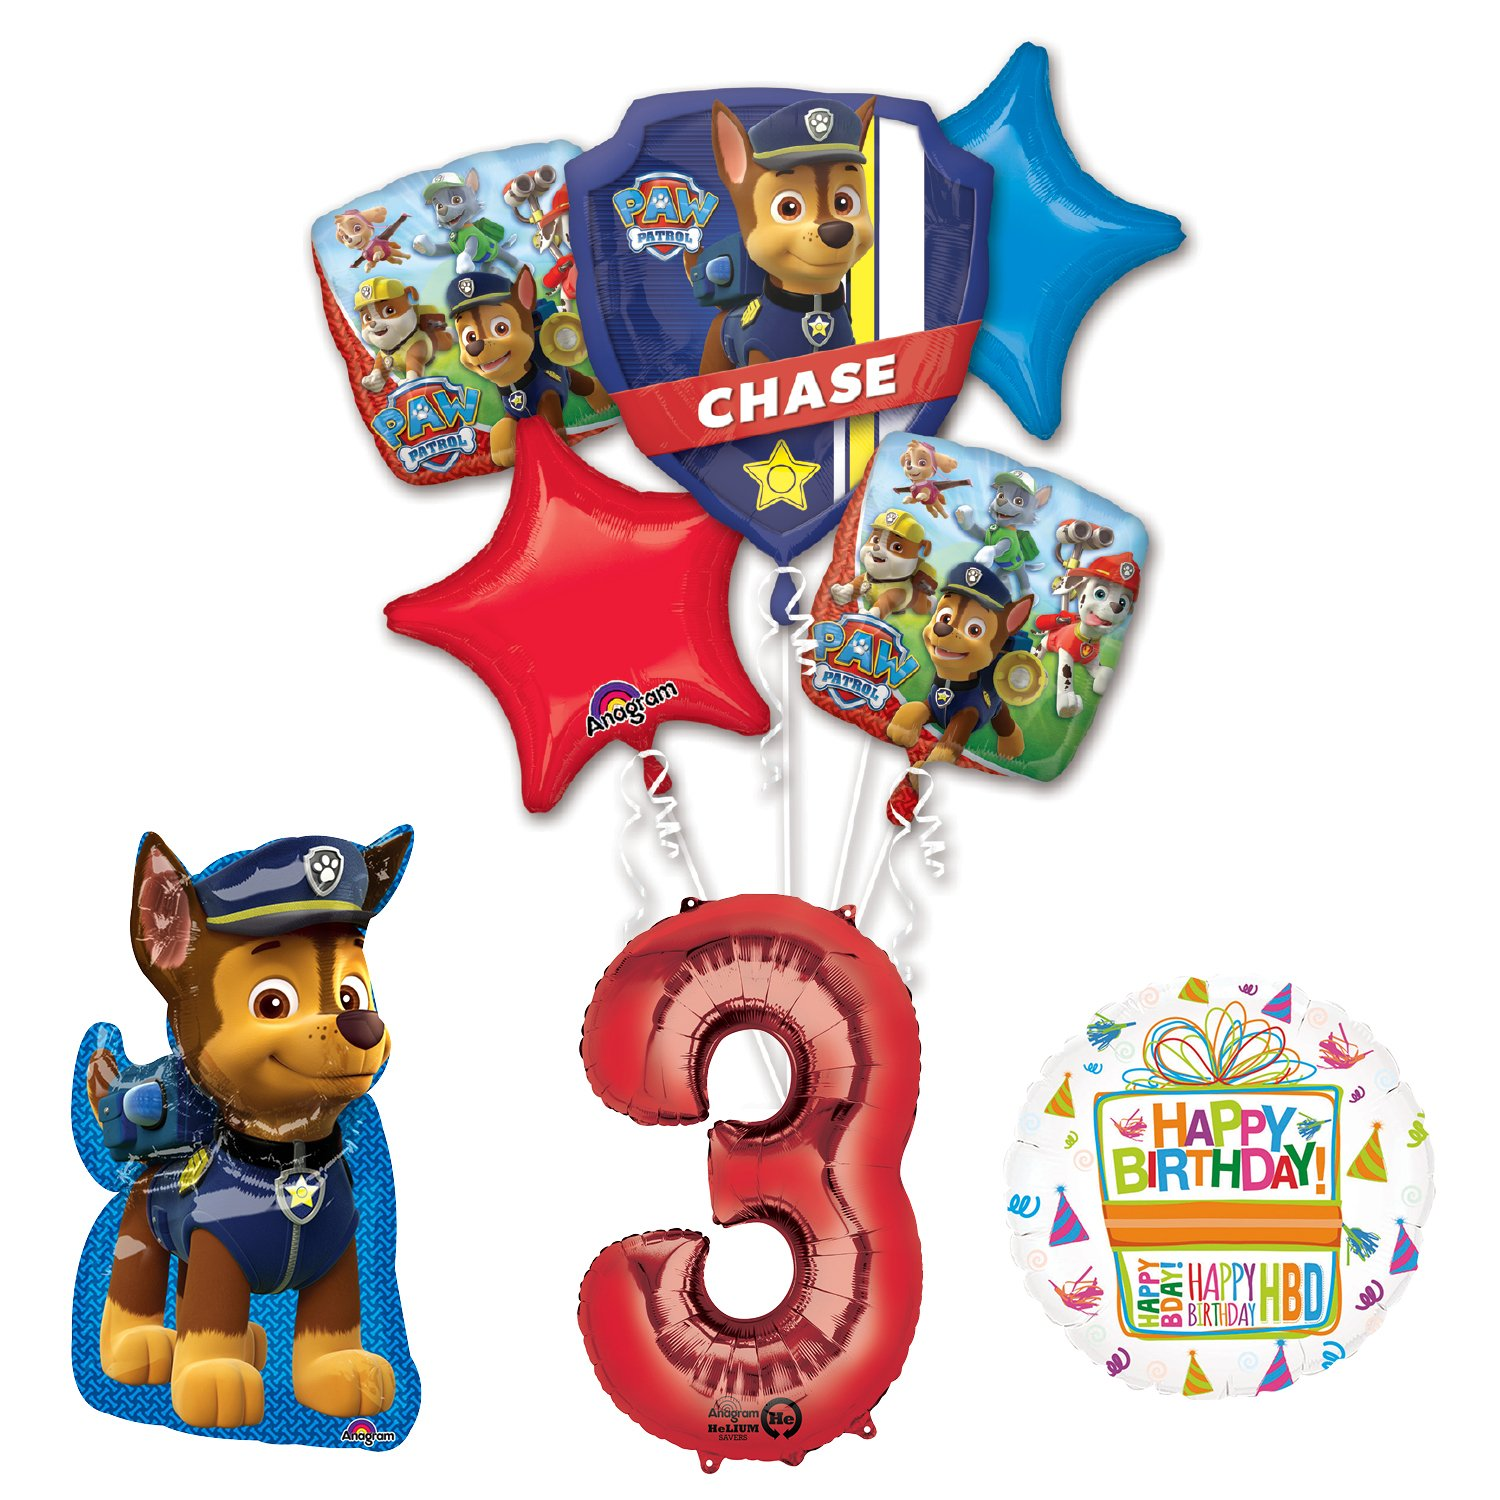 Amazon Mayflower Products The Ultimate Paw Patrol 3rd Birthday Party Supplies And Balloon Decorations Toys Games